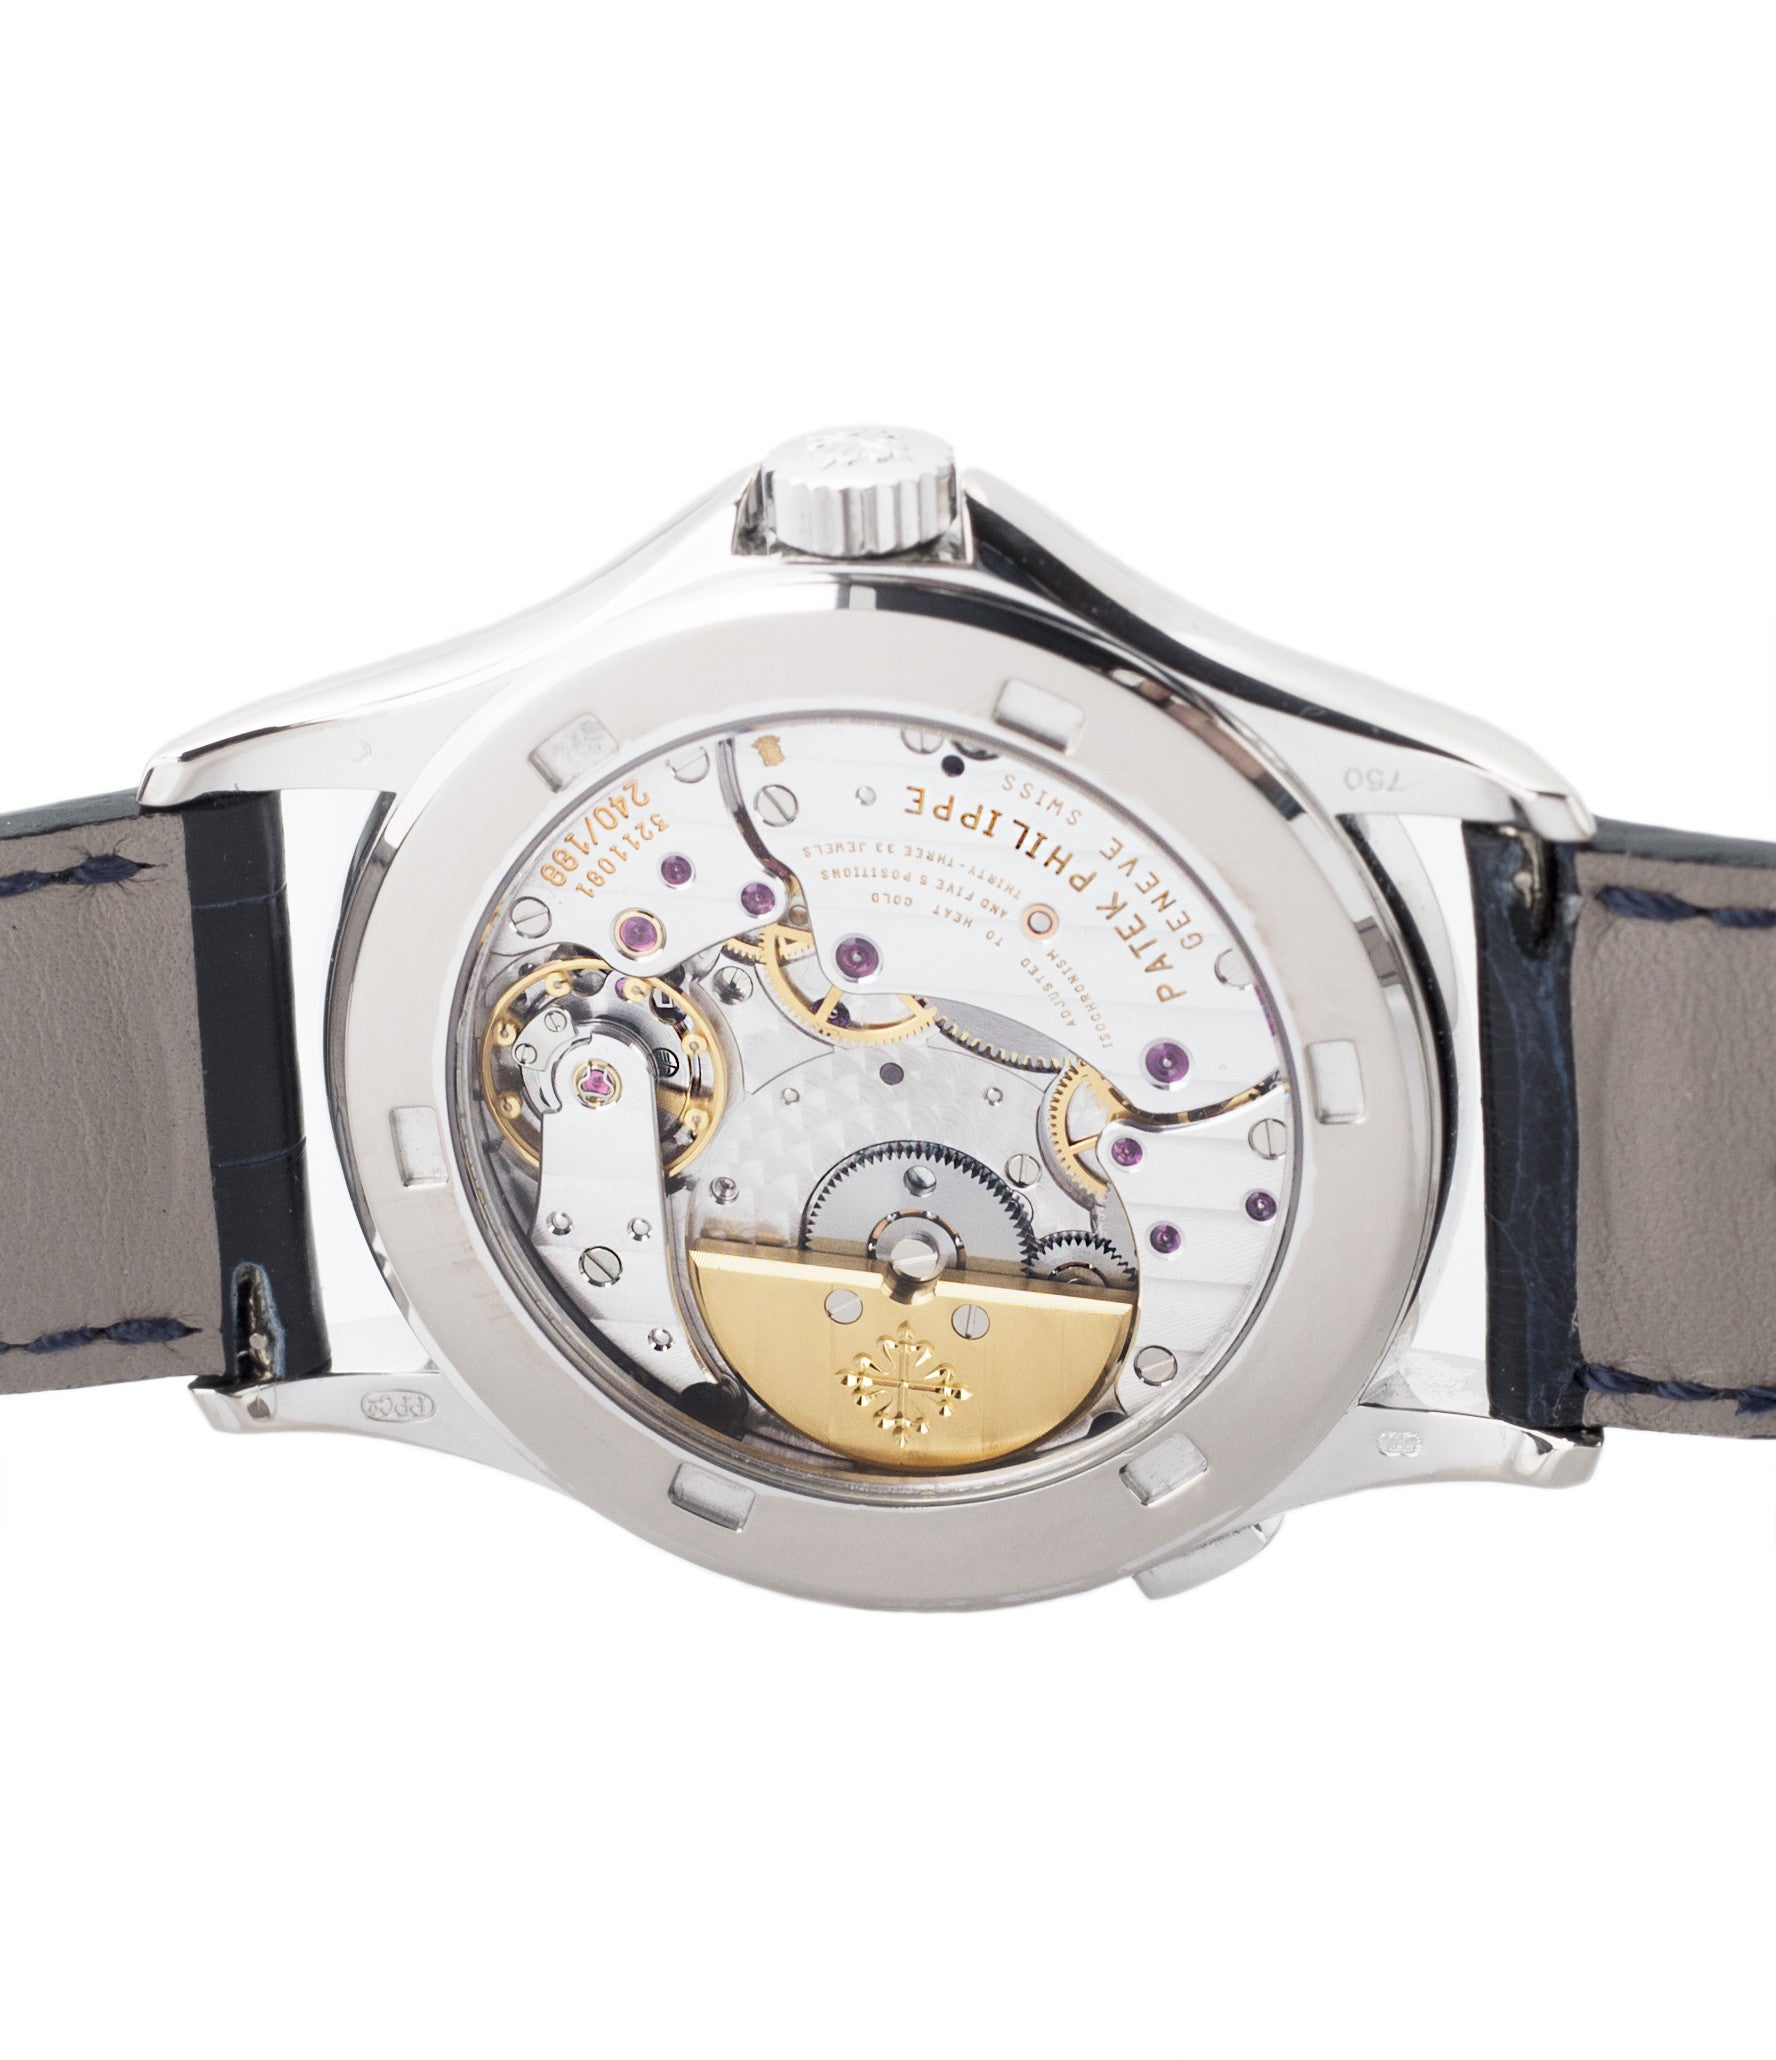 automatic 240HU Patek Philippe 5110G-001 white gold World-timer luxury dress watch online for sale at A Collected Man London specialist preowned luxury watches